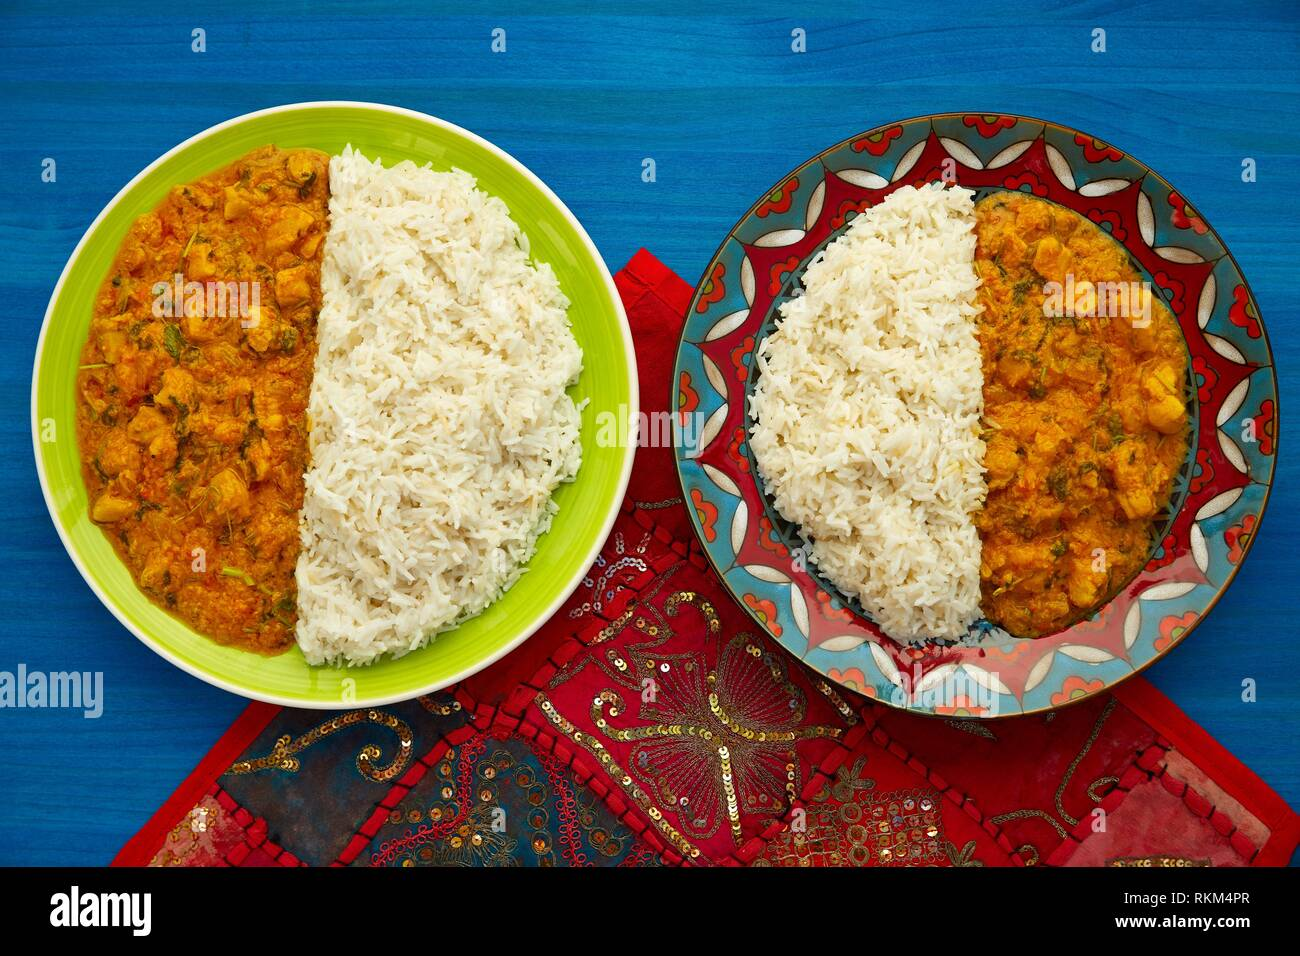 Chicken curry dish indian recipe on blue table. - Stock Image